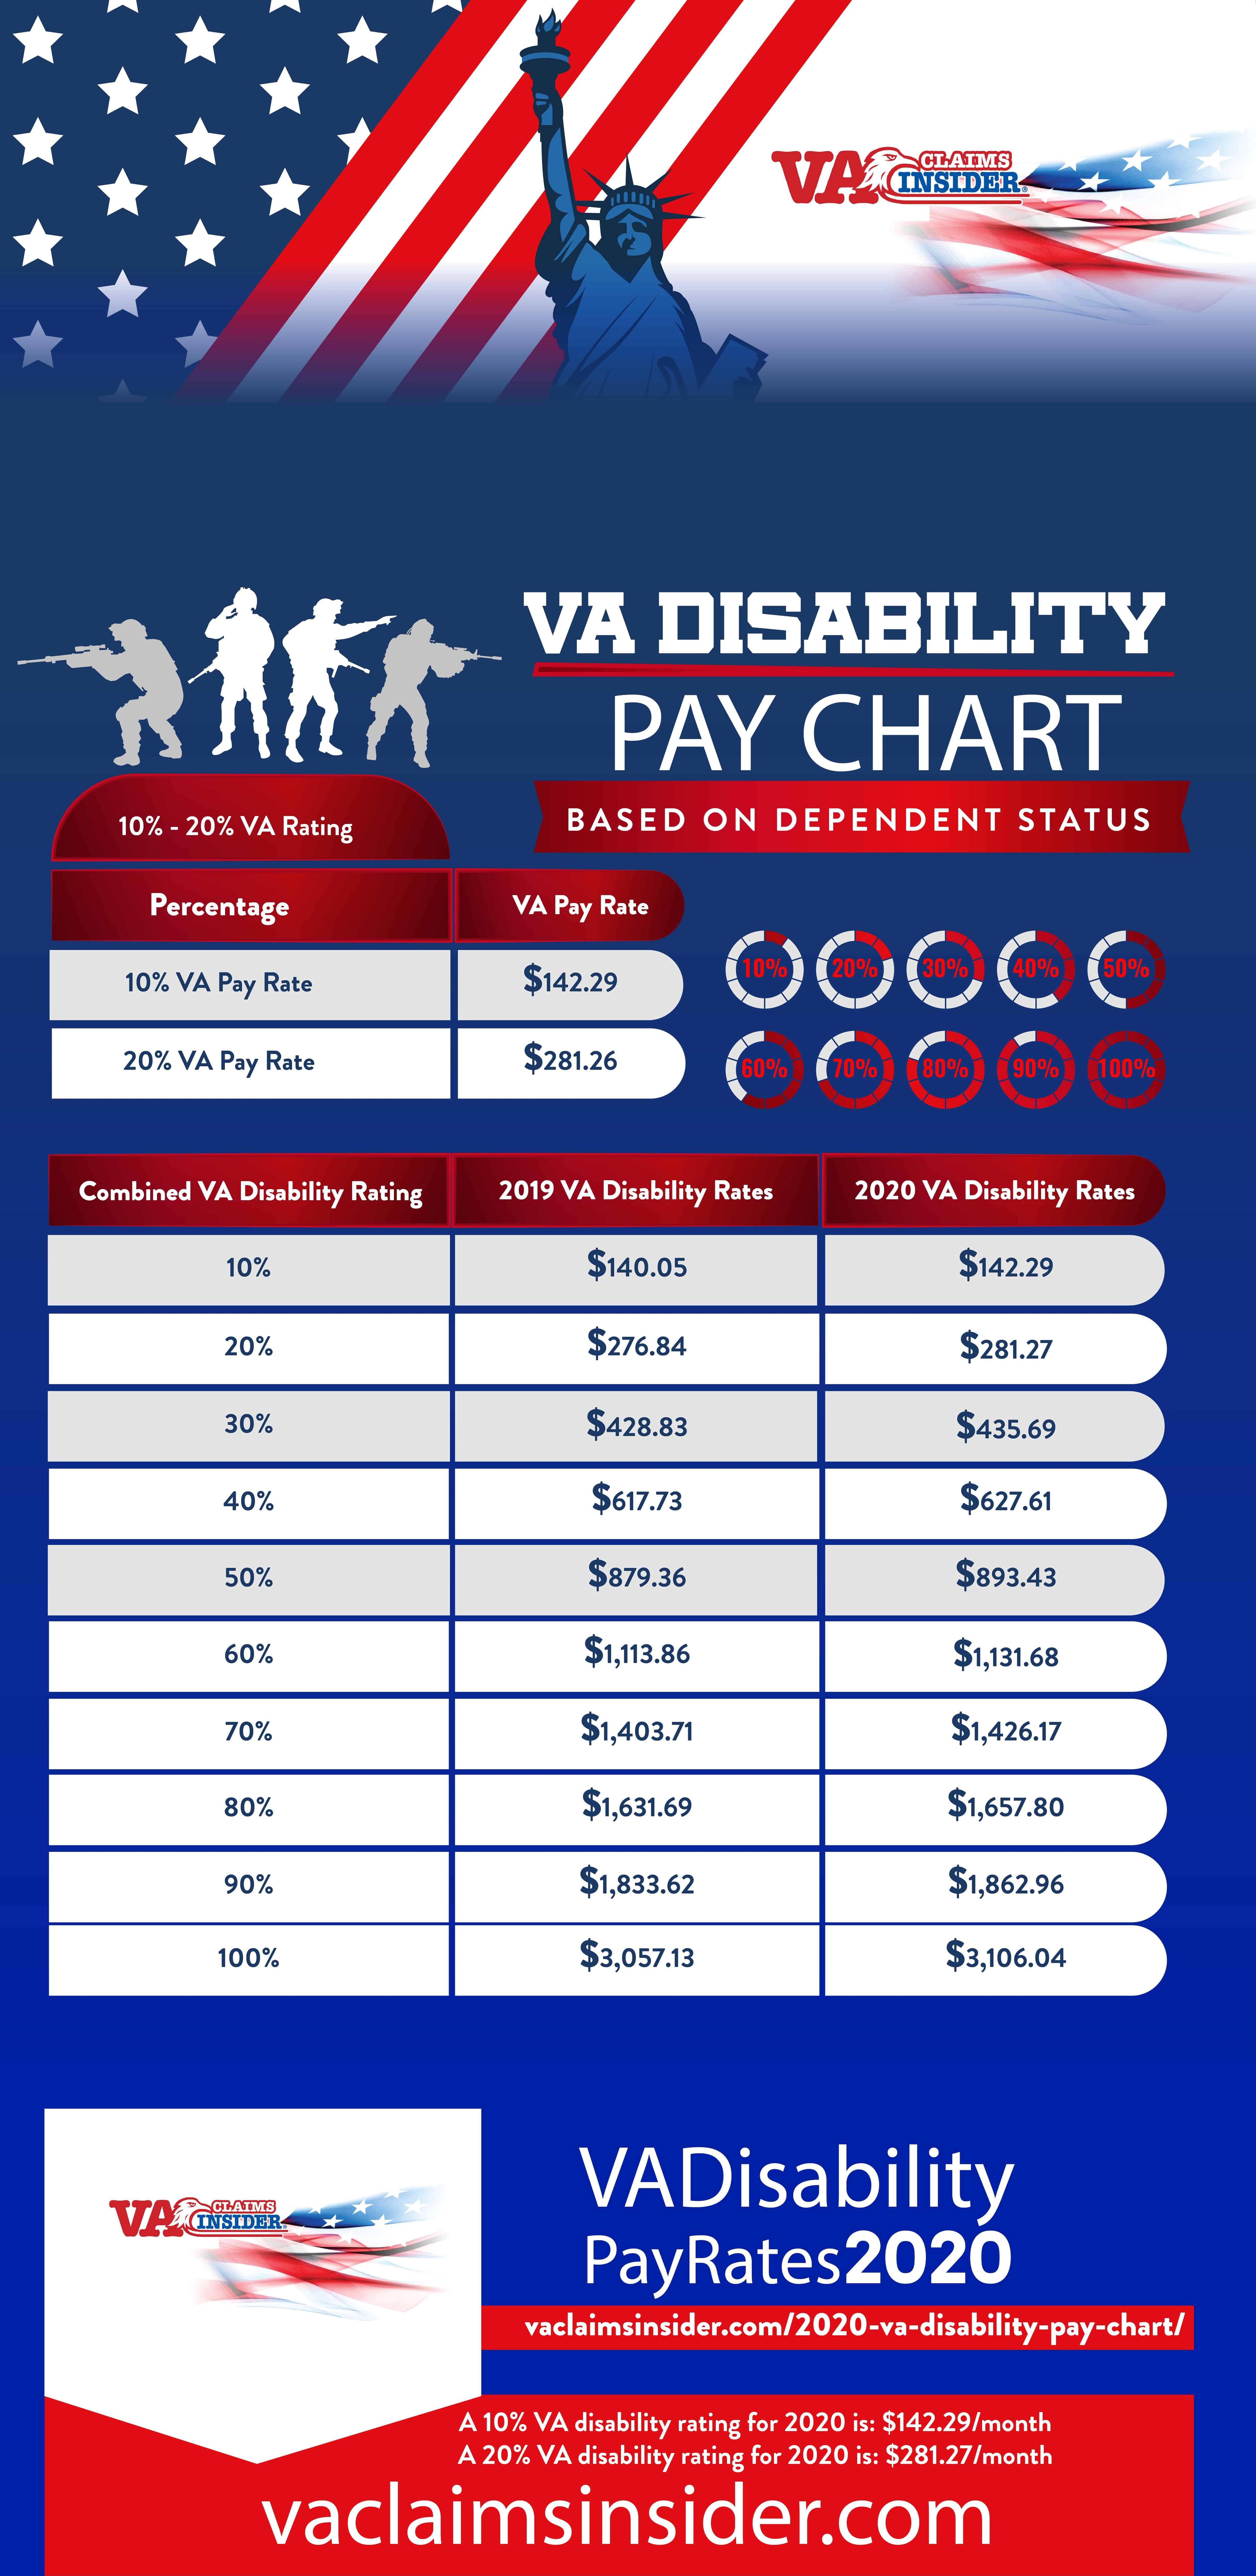 Military Medical Retirement Pay Chart 2020 In 2020 | Va